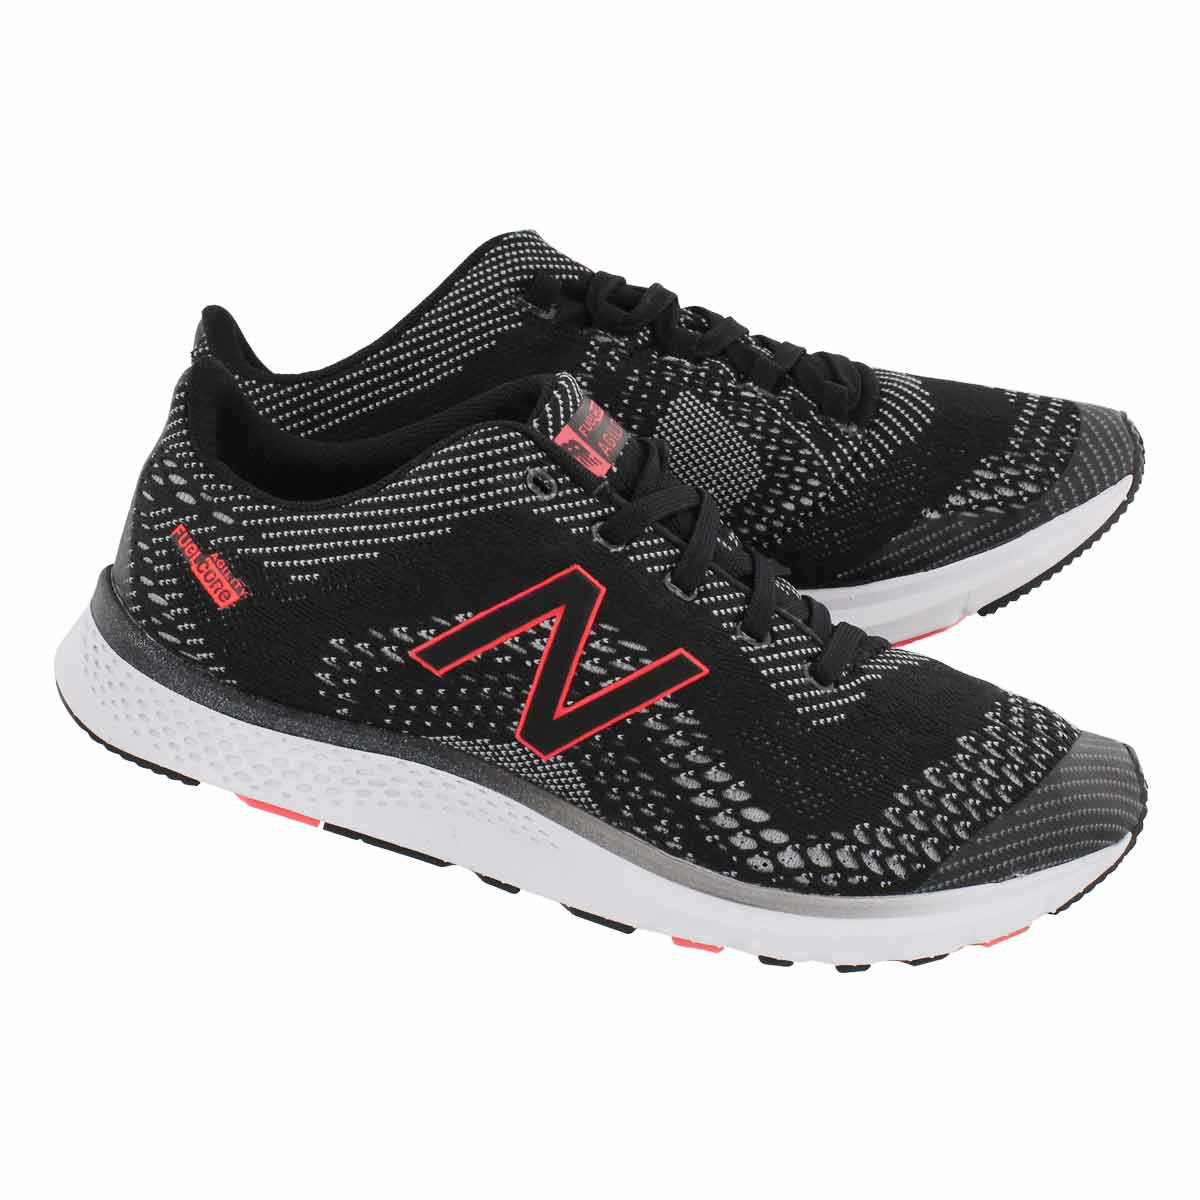 Lds Agility V2 blk/slvr lace up sneaker